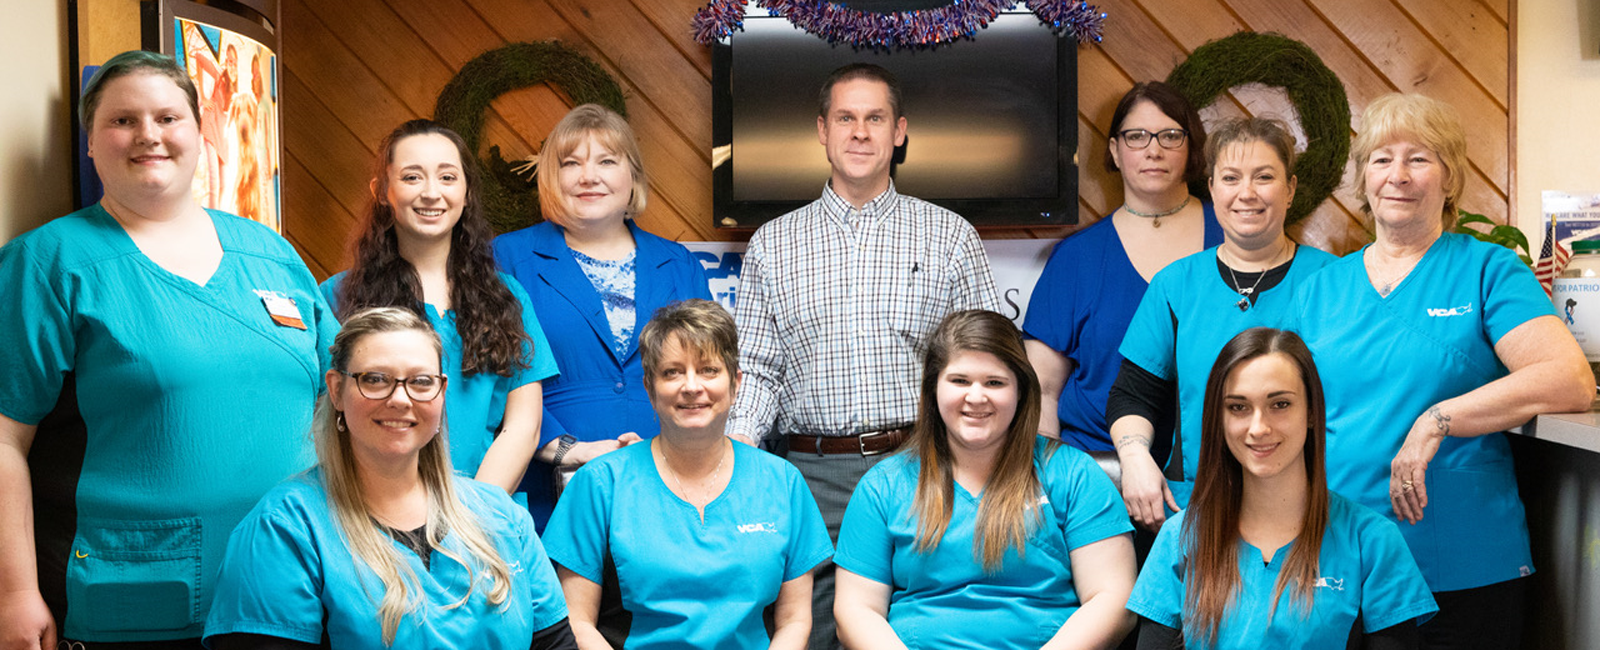 Homepage Team Picture of VCA East Penn Animal Hospital